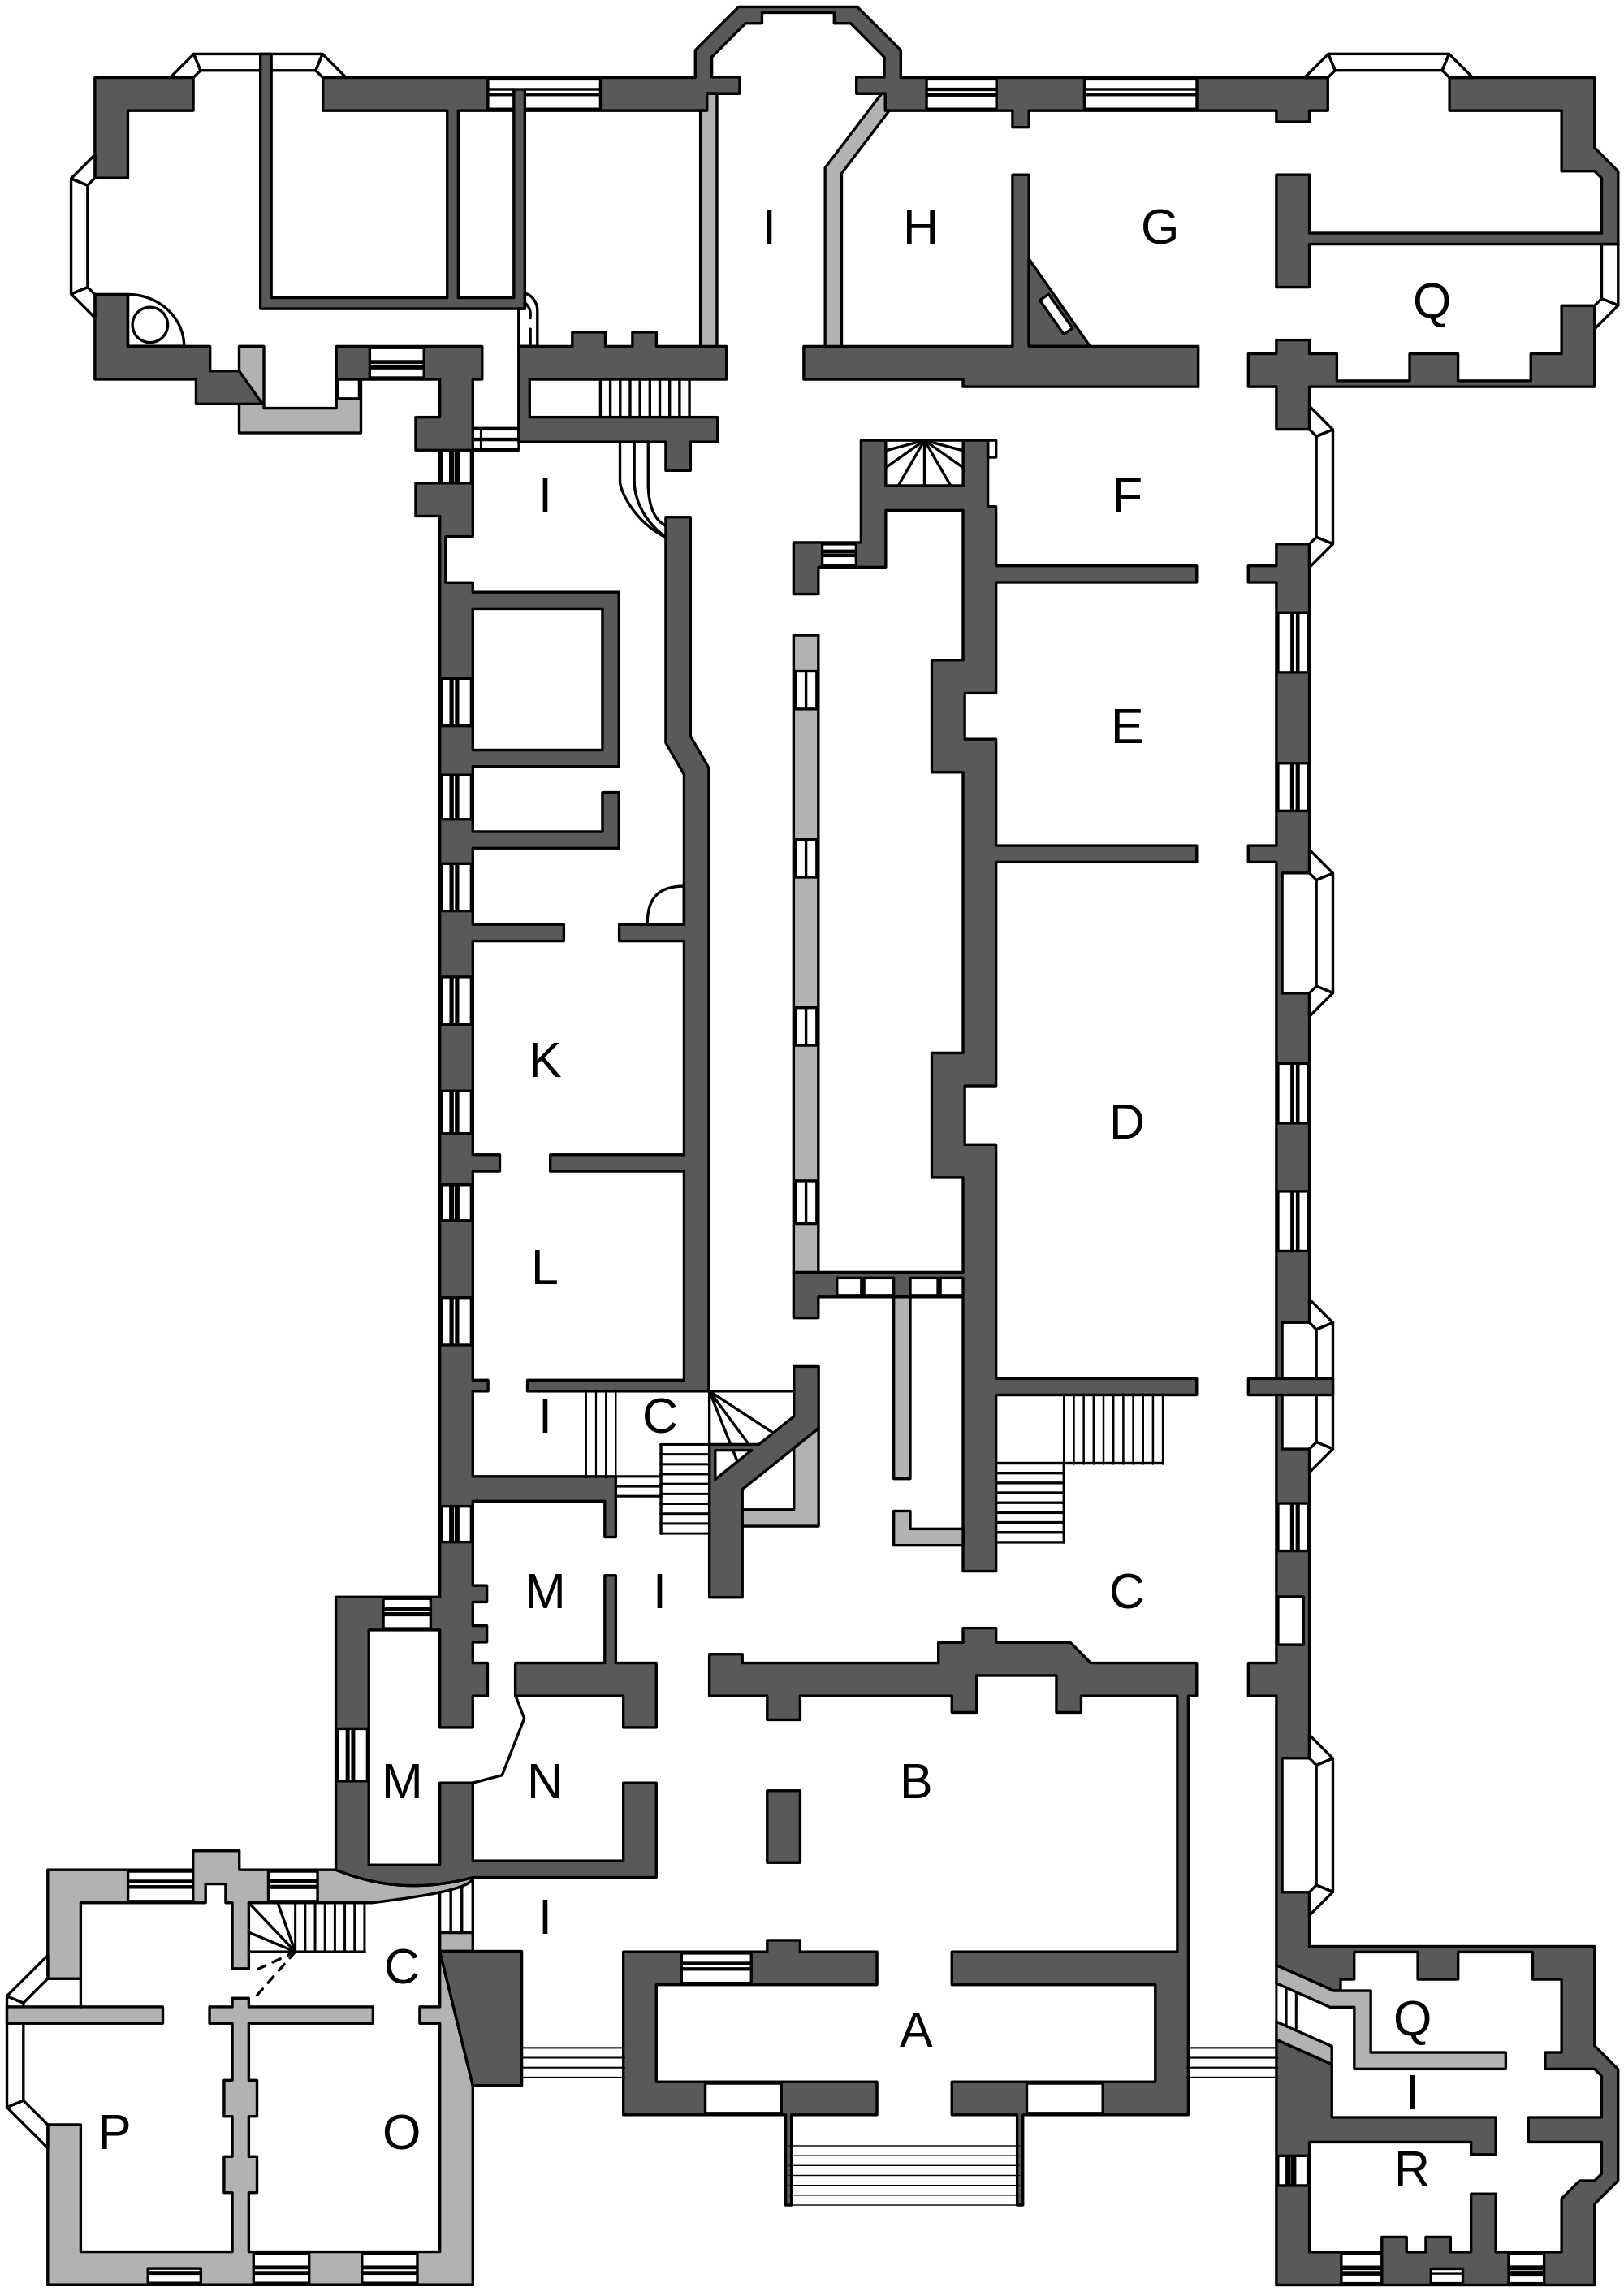 Drawing bedrooms interior decorating. Bramshill house wikipedia the